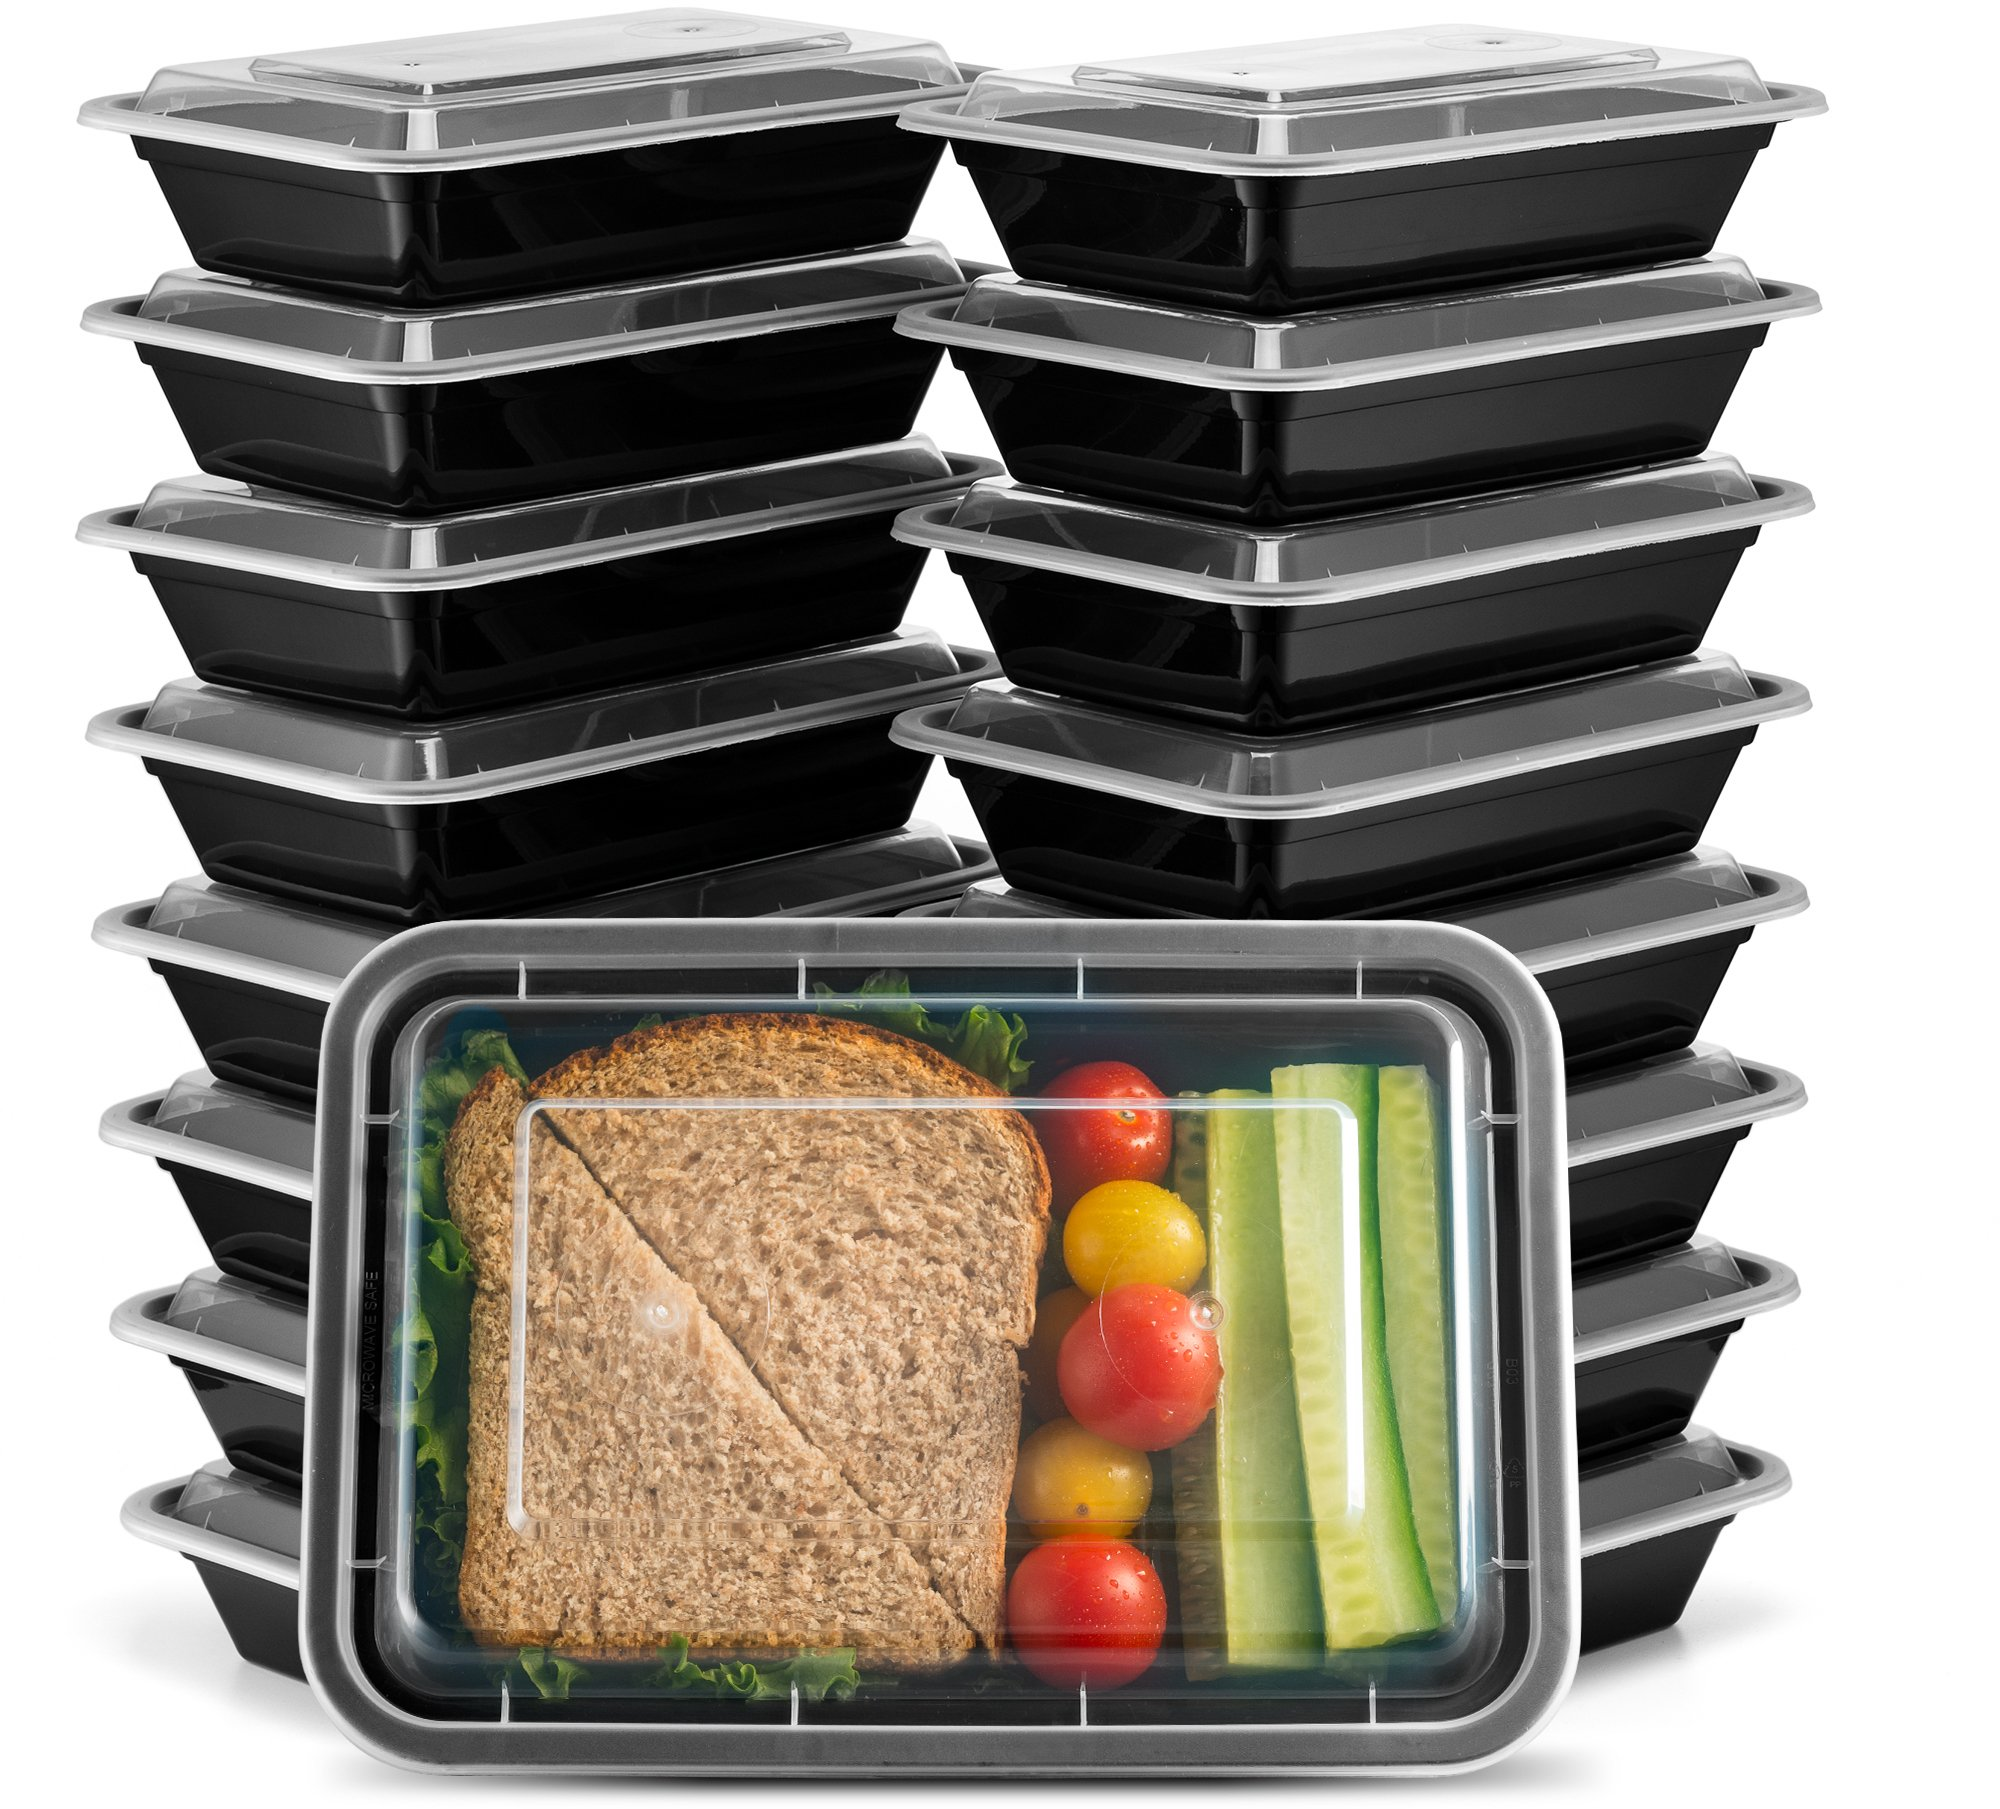 Ez Prepa [20 Pack] 28oz Single Compartment Meal Prep Containers with Lids - Food Storage Containers Bento Box Lunch Box Made of BPA Free Plastic, Stackable, Reusable, Microwavable, Freezer, and Dishw